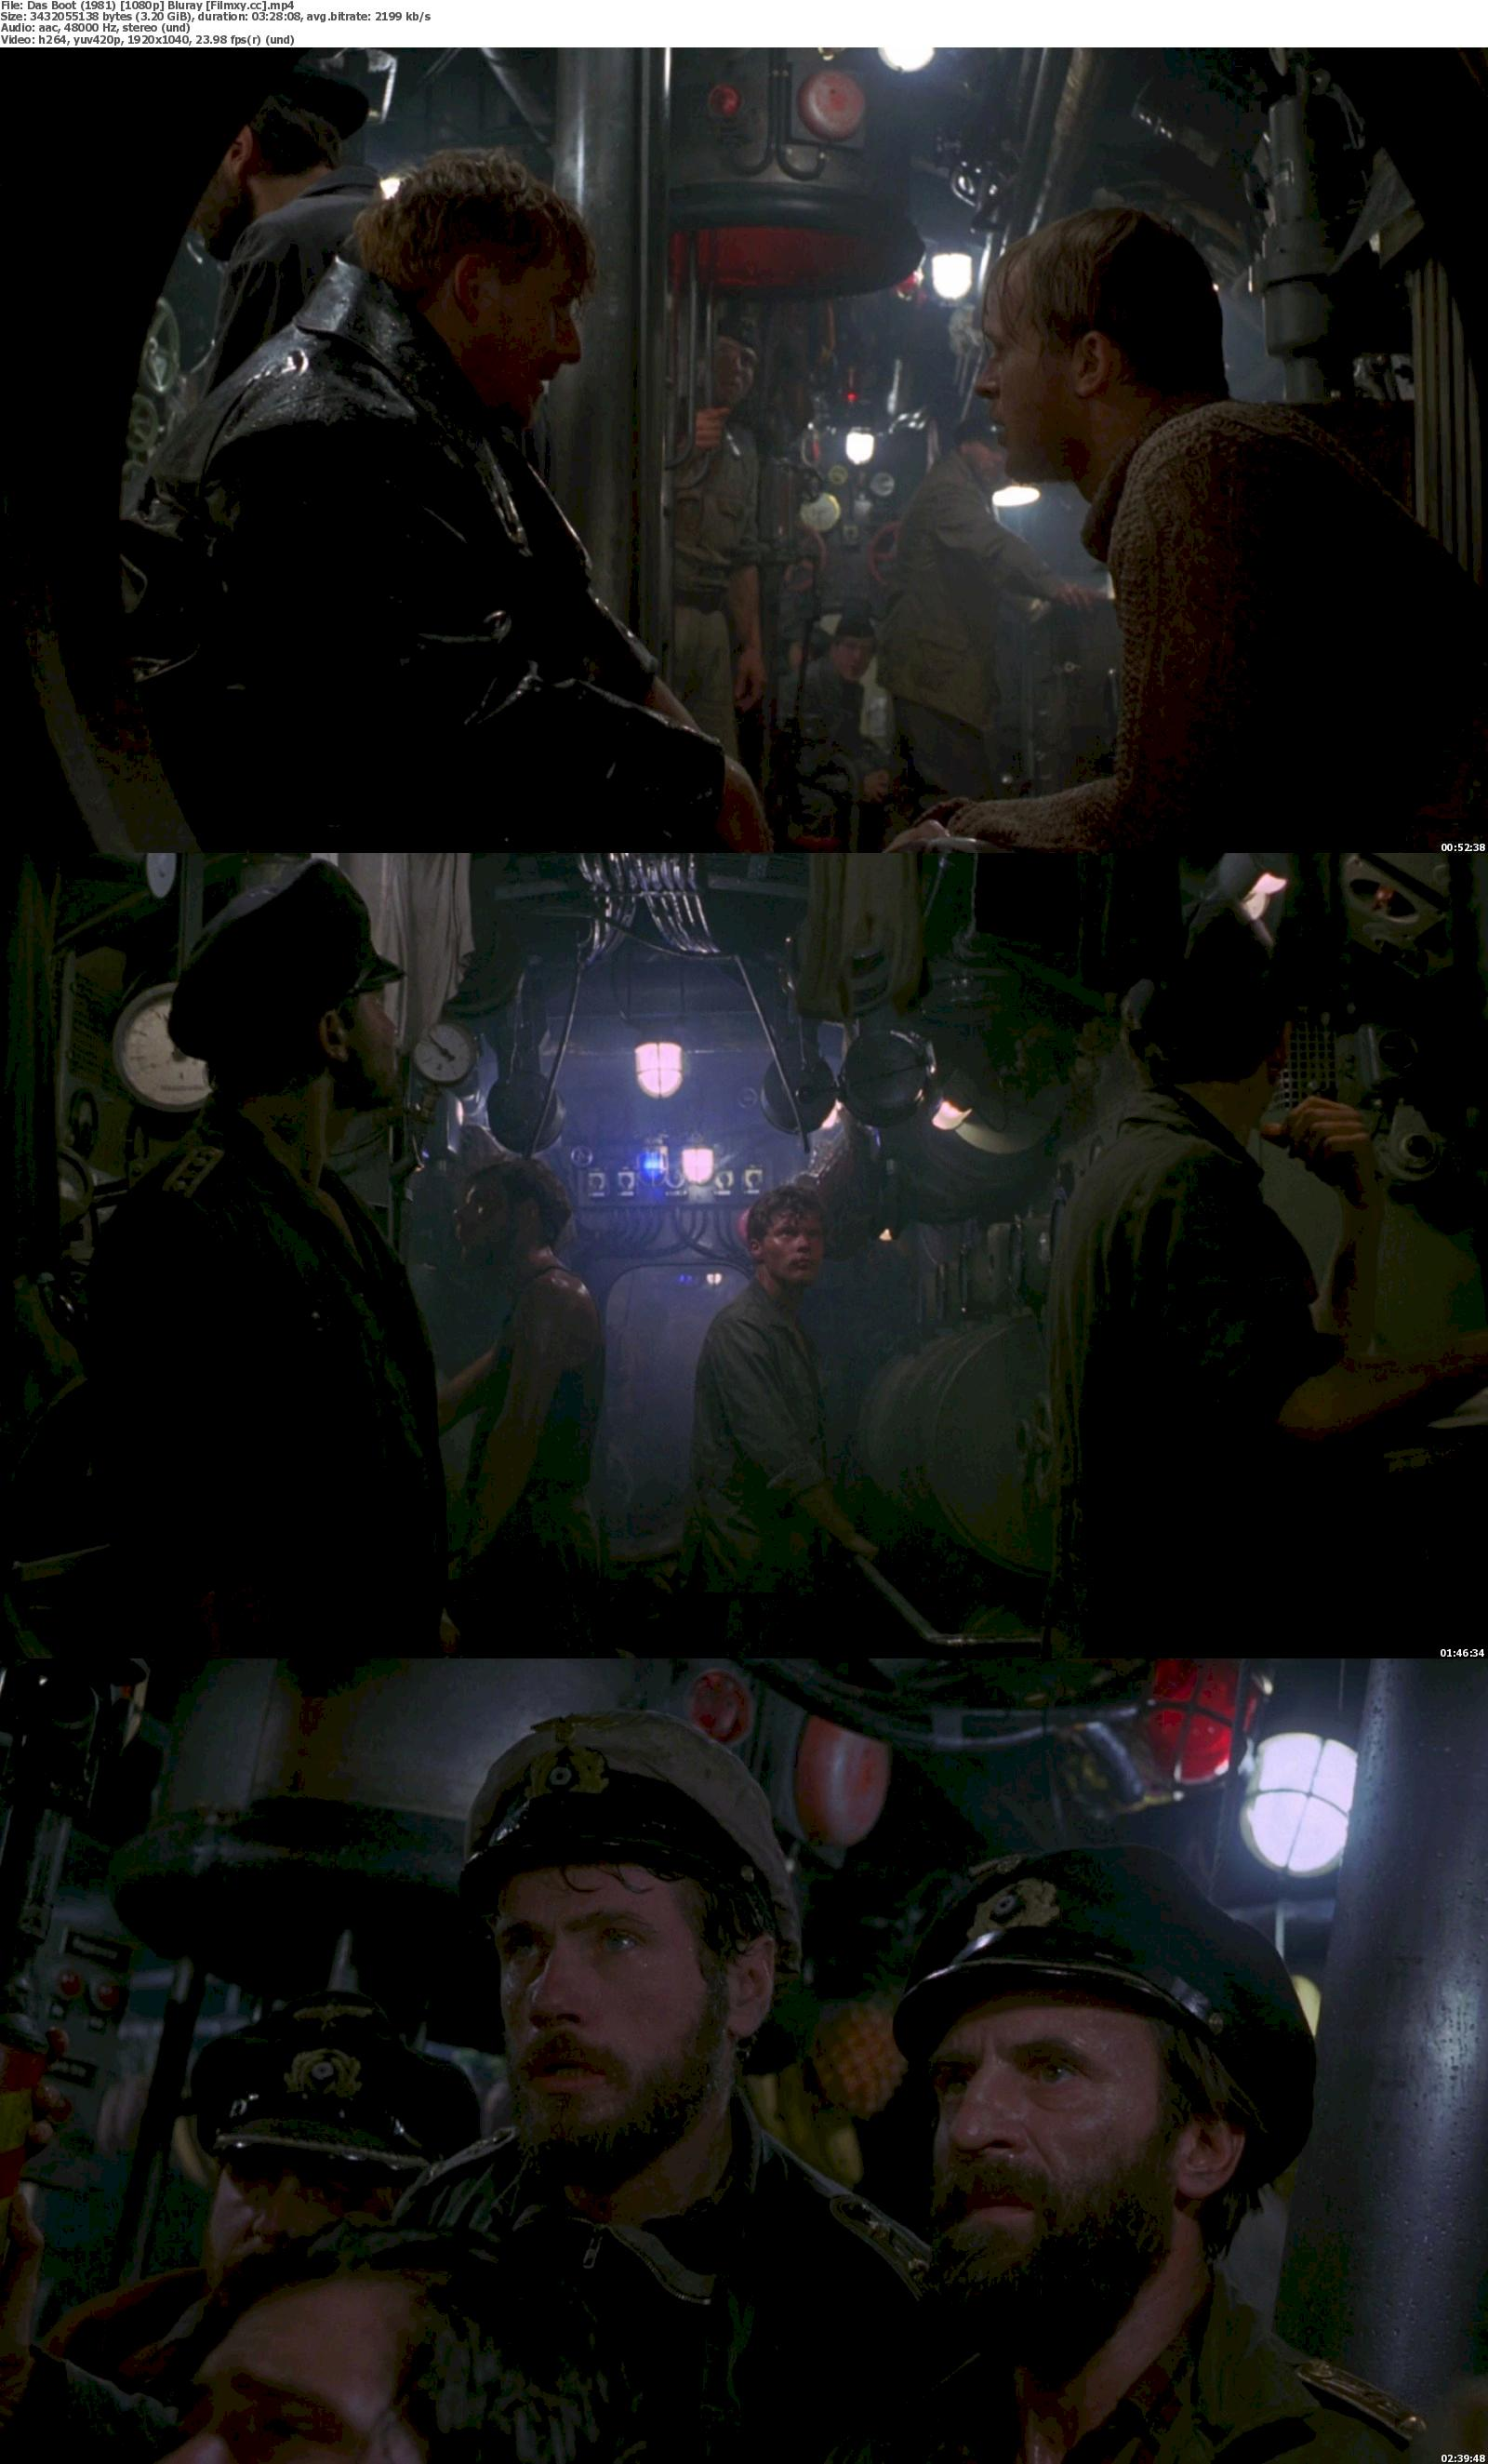 Das Boot (1981) 720p & 1080p Bluray Free Download 1080p Screenshot